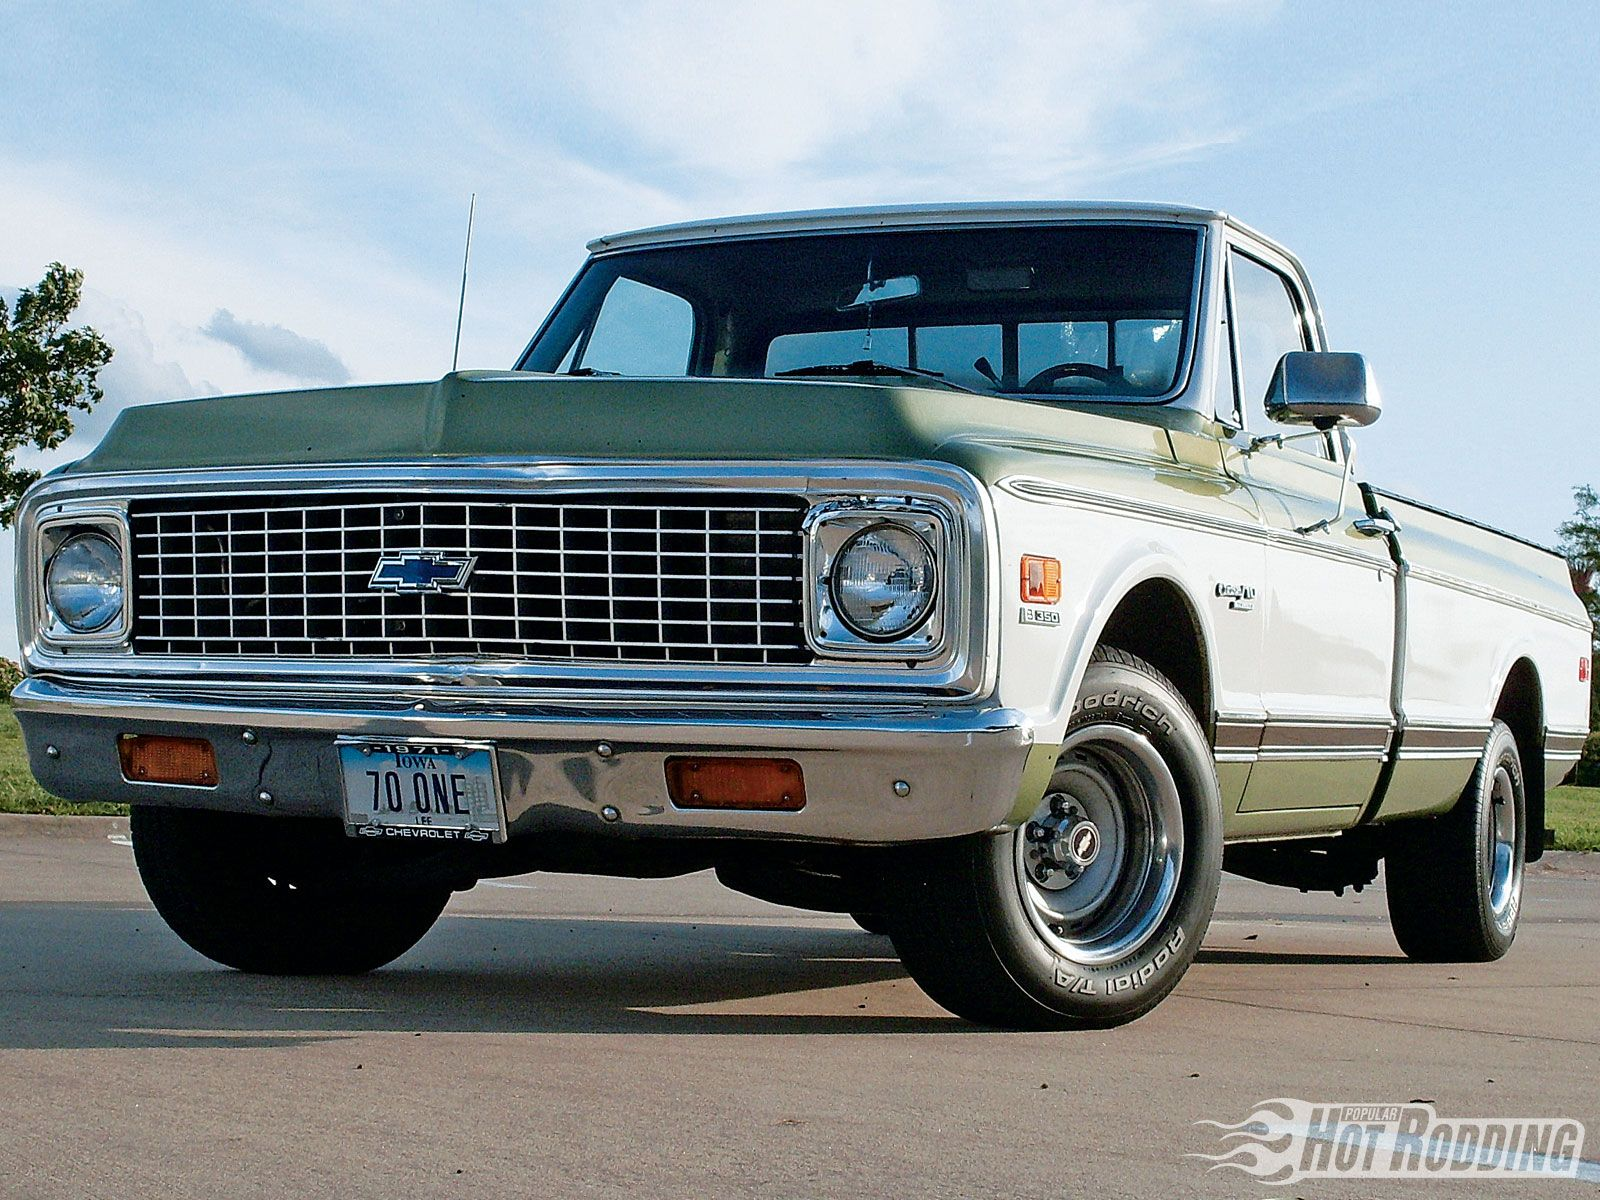 medium resolution of 1971 chevy pickup what were they thinking with that green color